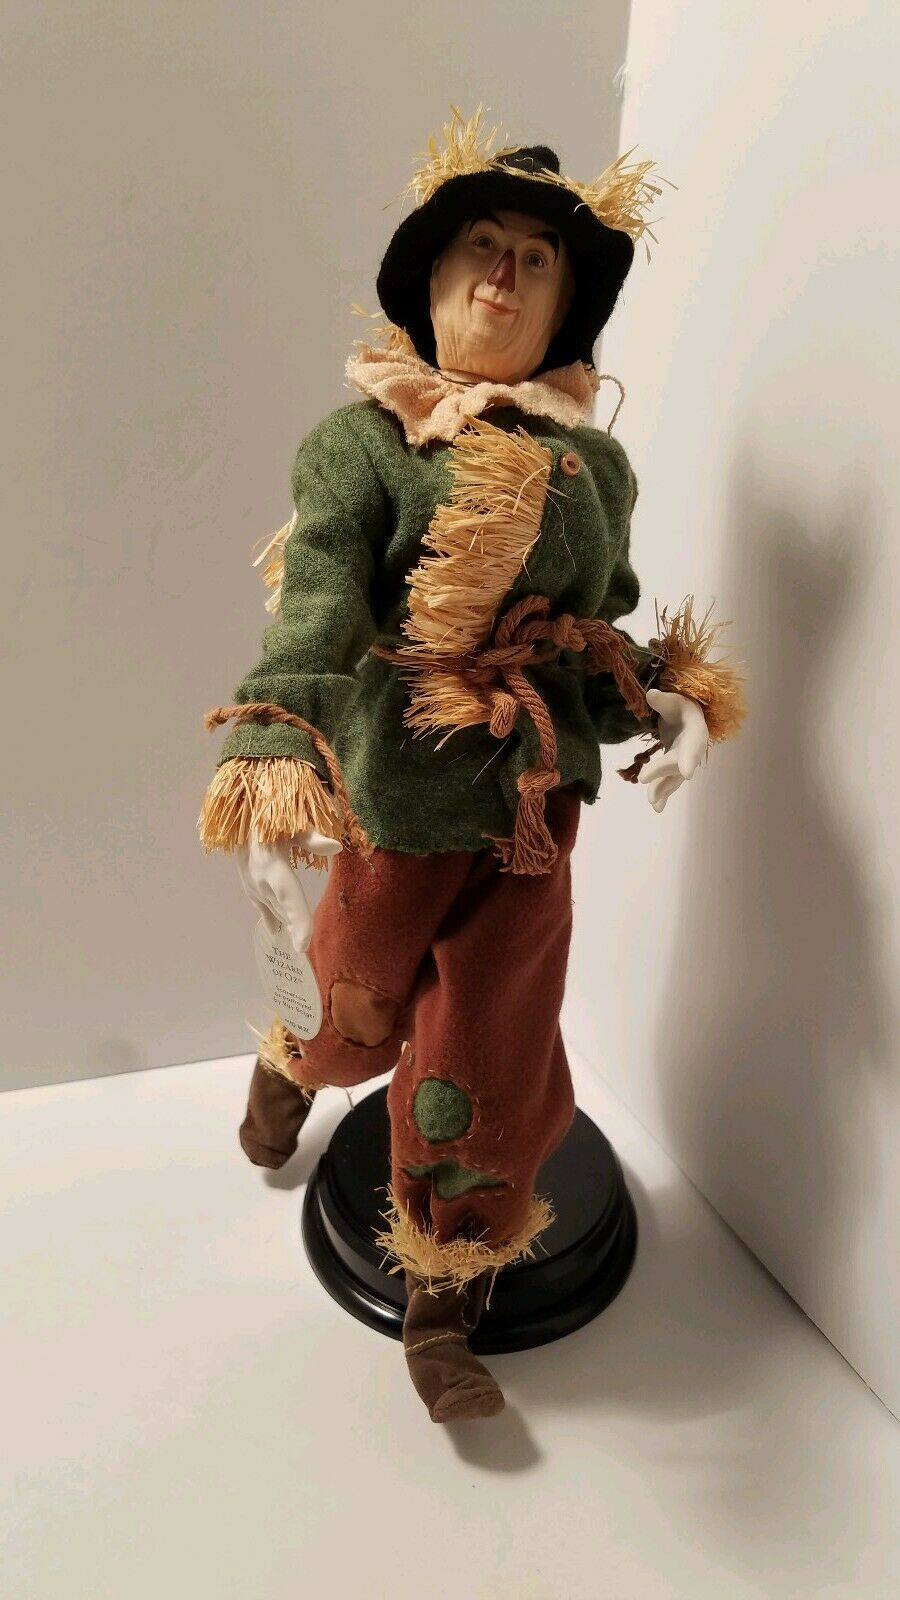 Wizard Of Oz Porcelain Collection Mattel 2000 Scarecrow Rare and Hard to Find